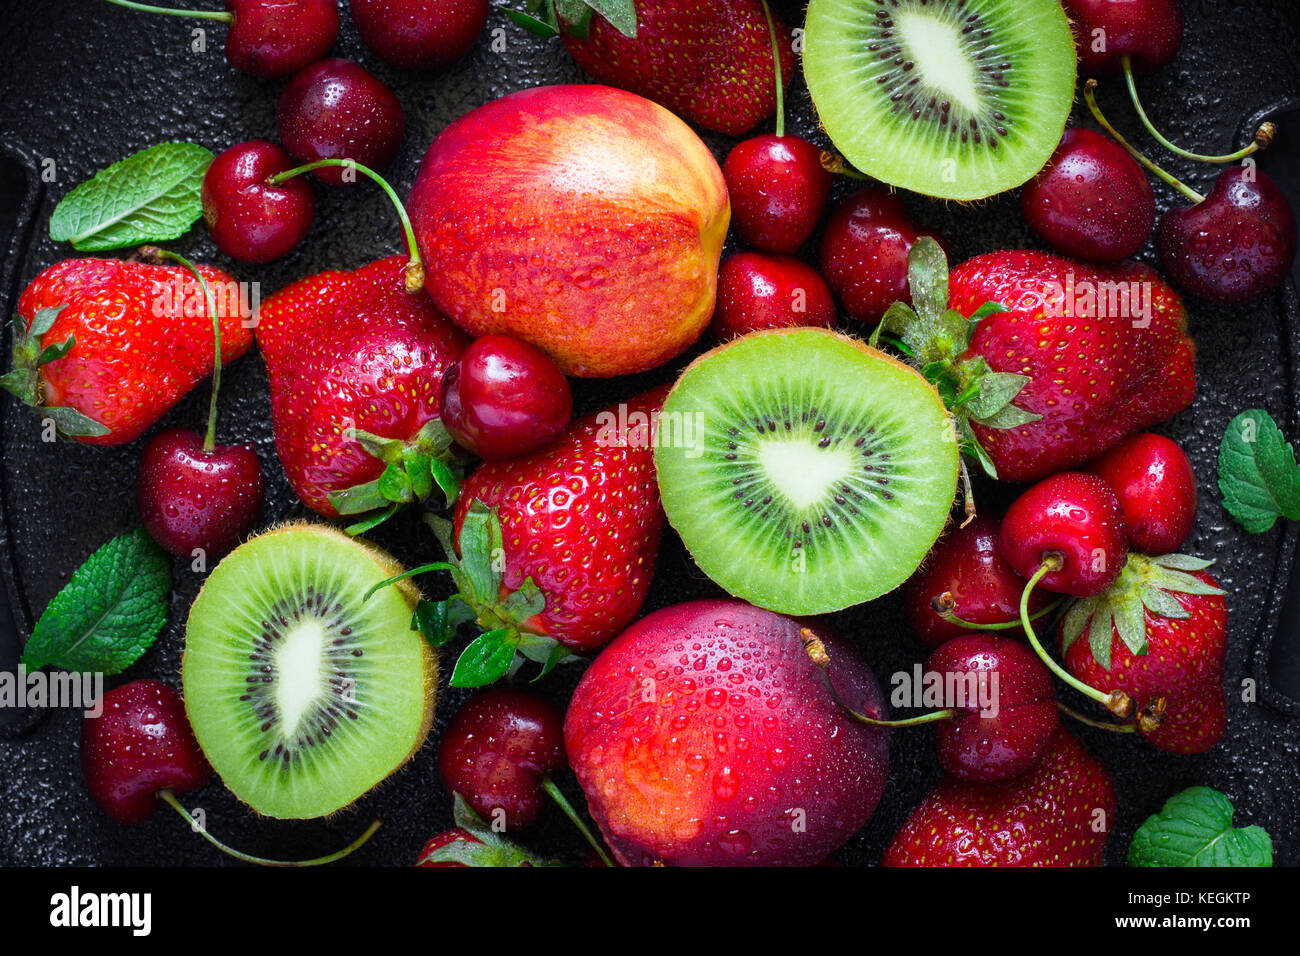 Summer juicy ripe Strawberry, cherry, kiwi and peaches On a black background closeup. Top view - Stock Image